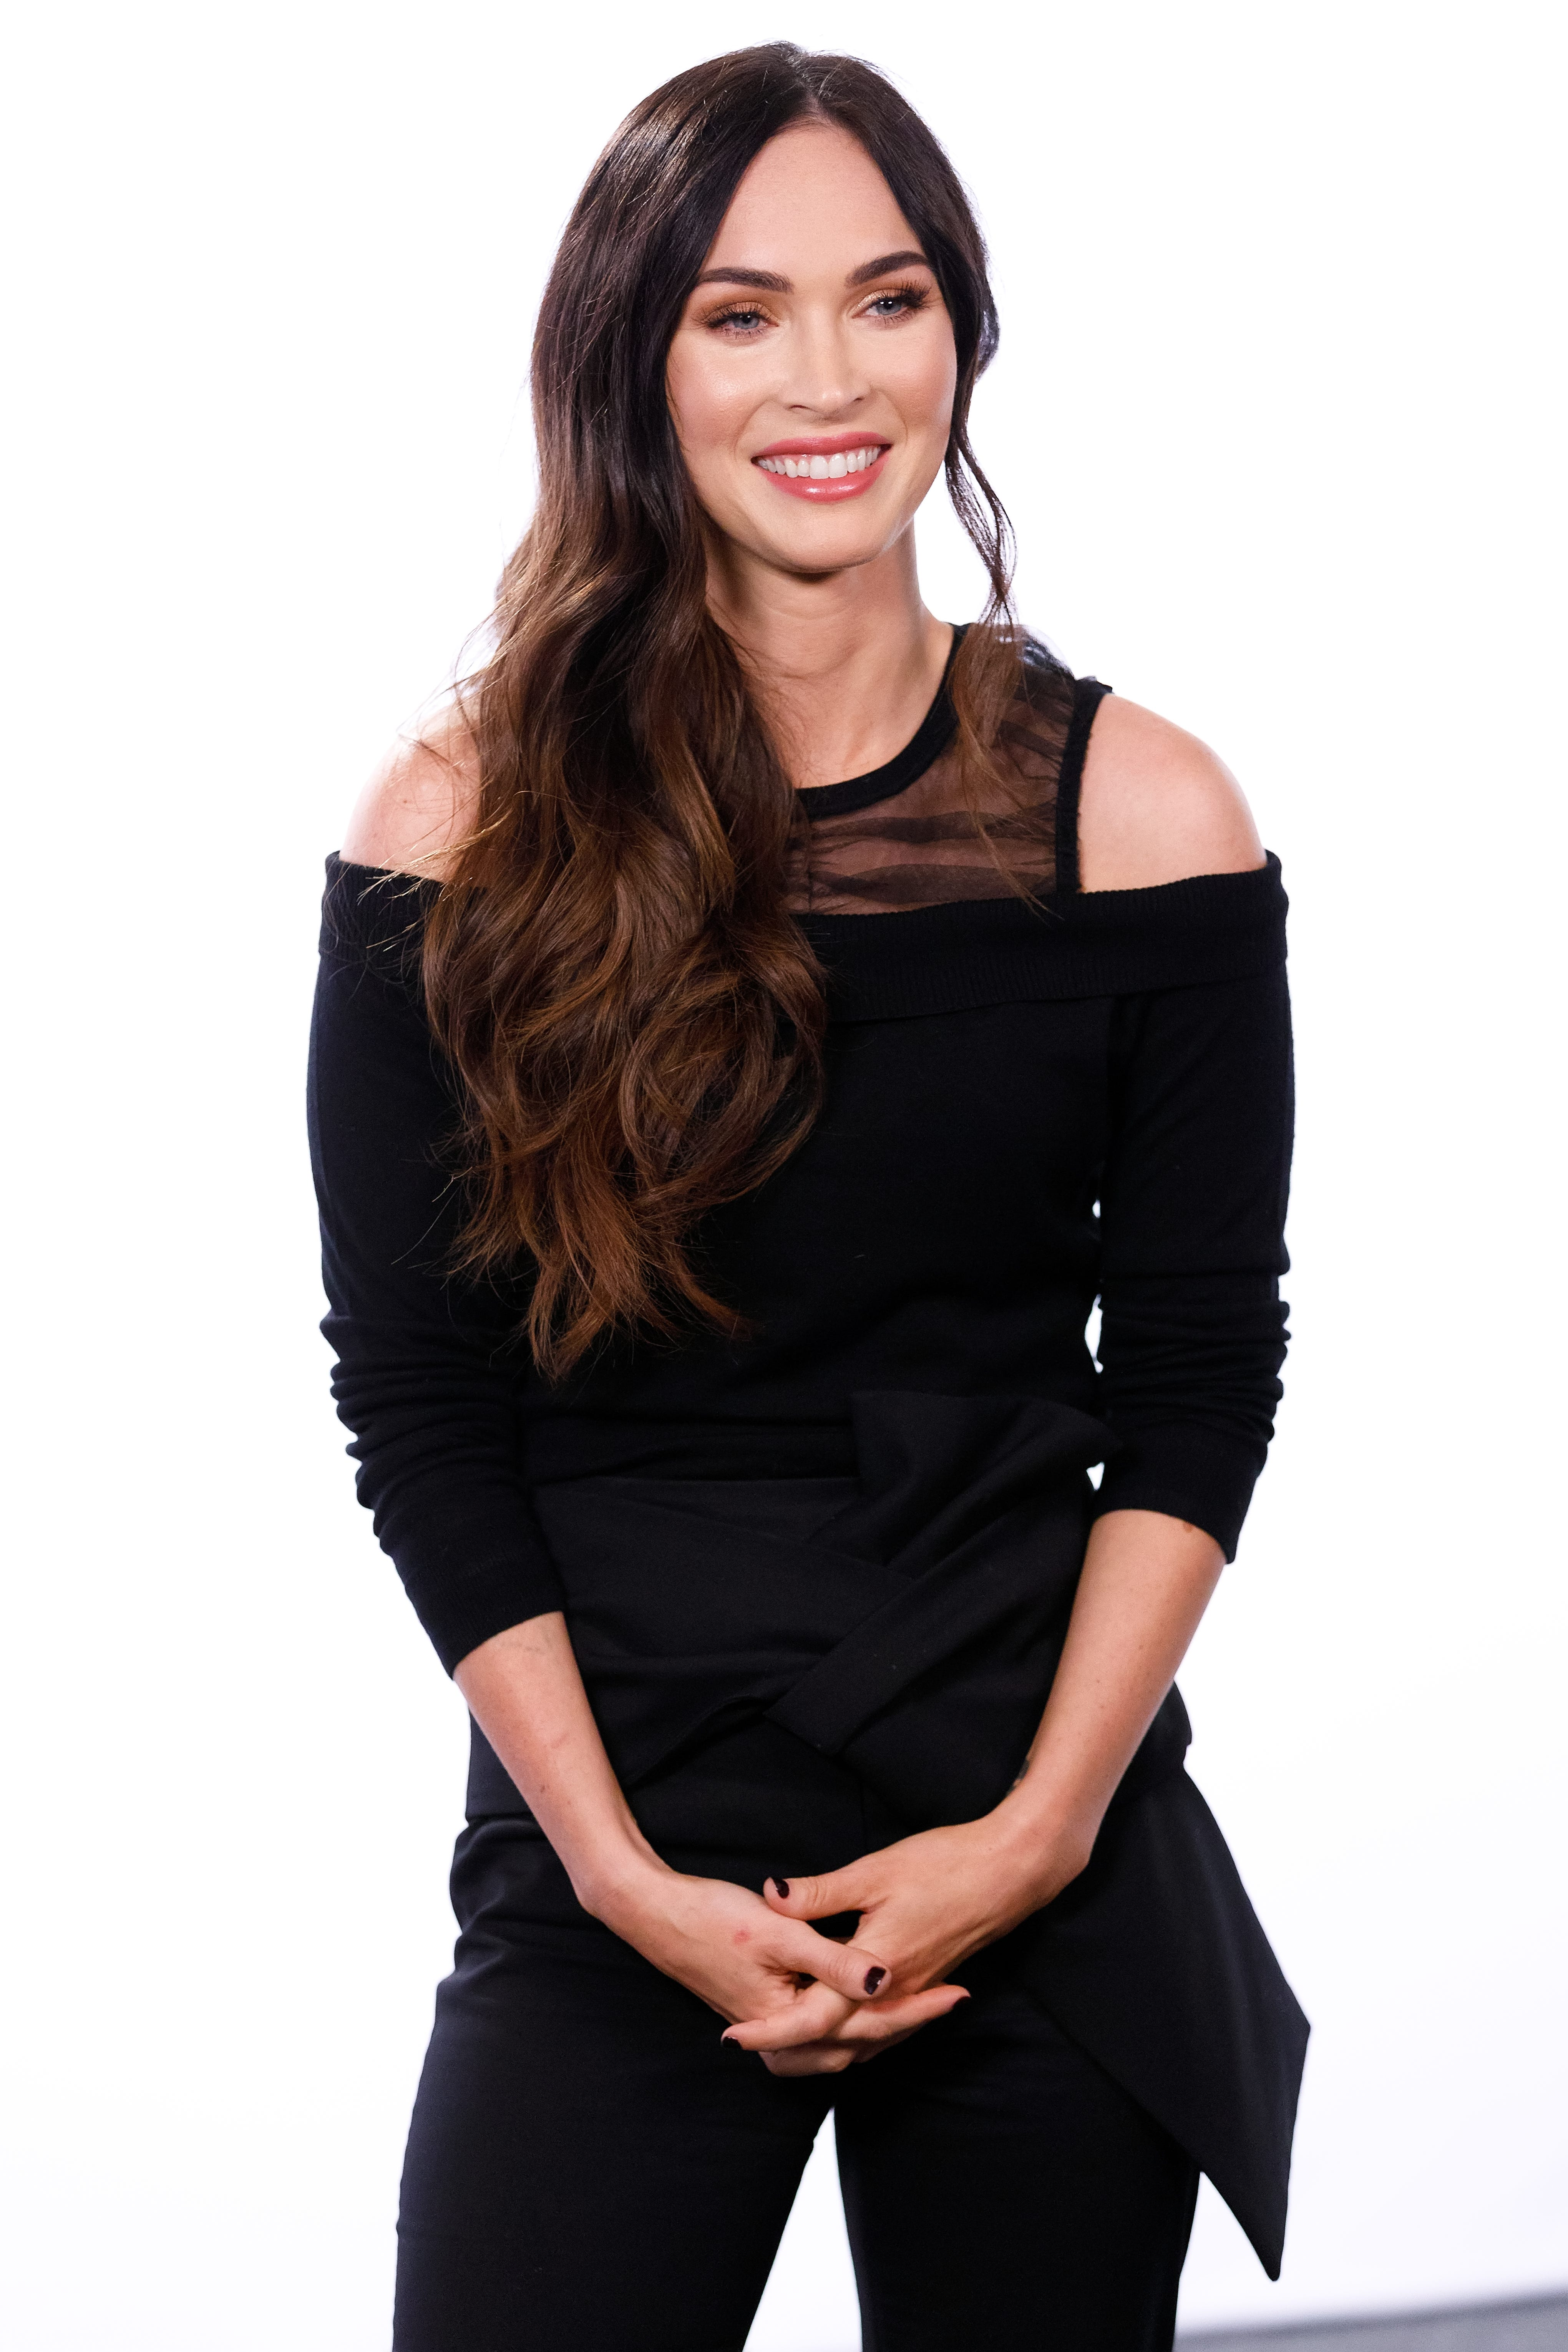 Megan Fox feels excluded from the #MeToo movement because she isn't a 'sympathetic victim'